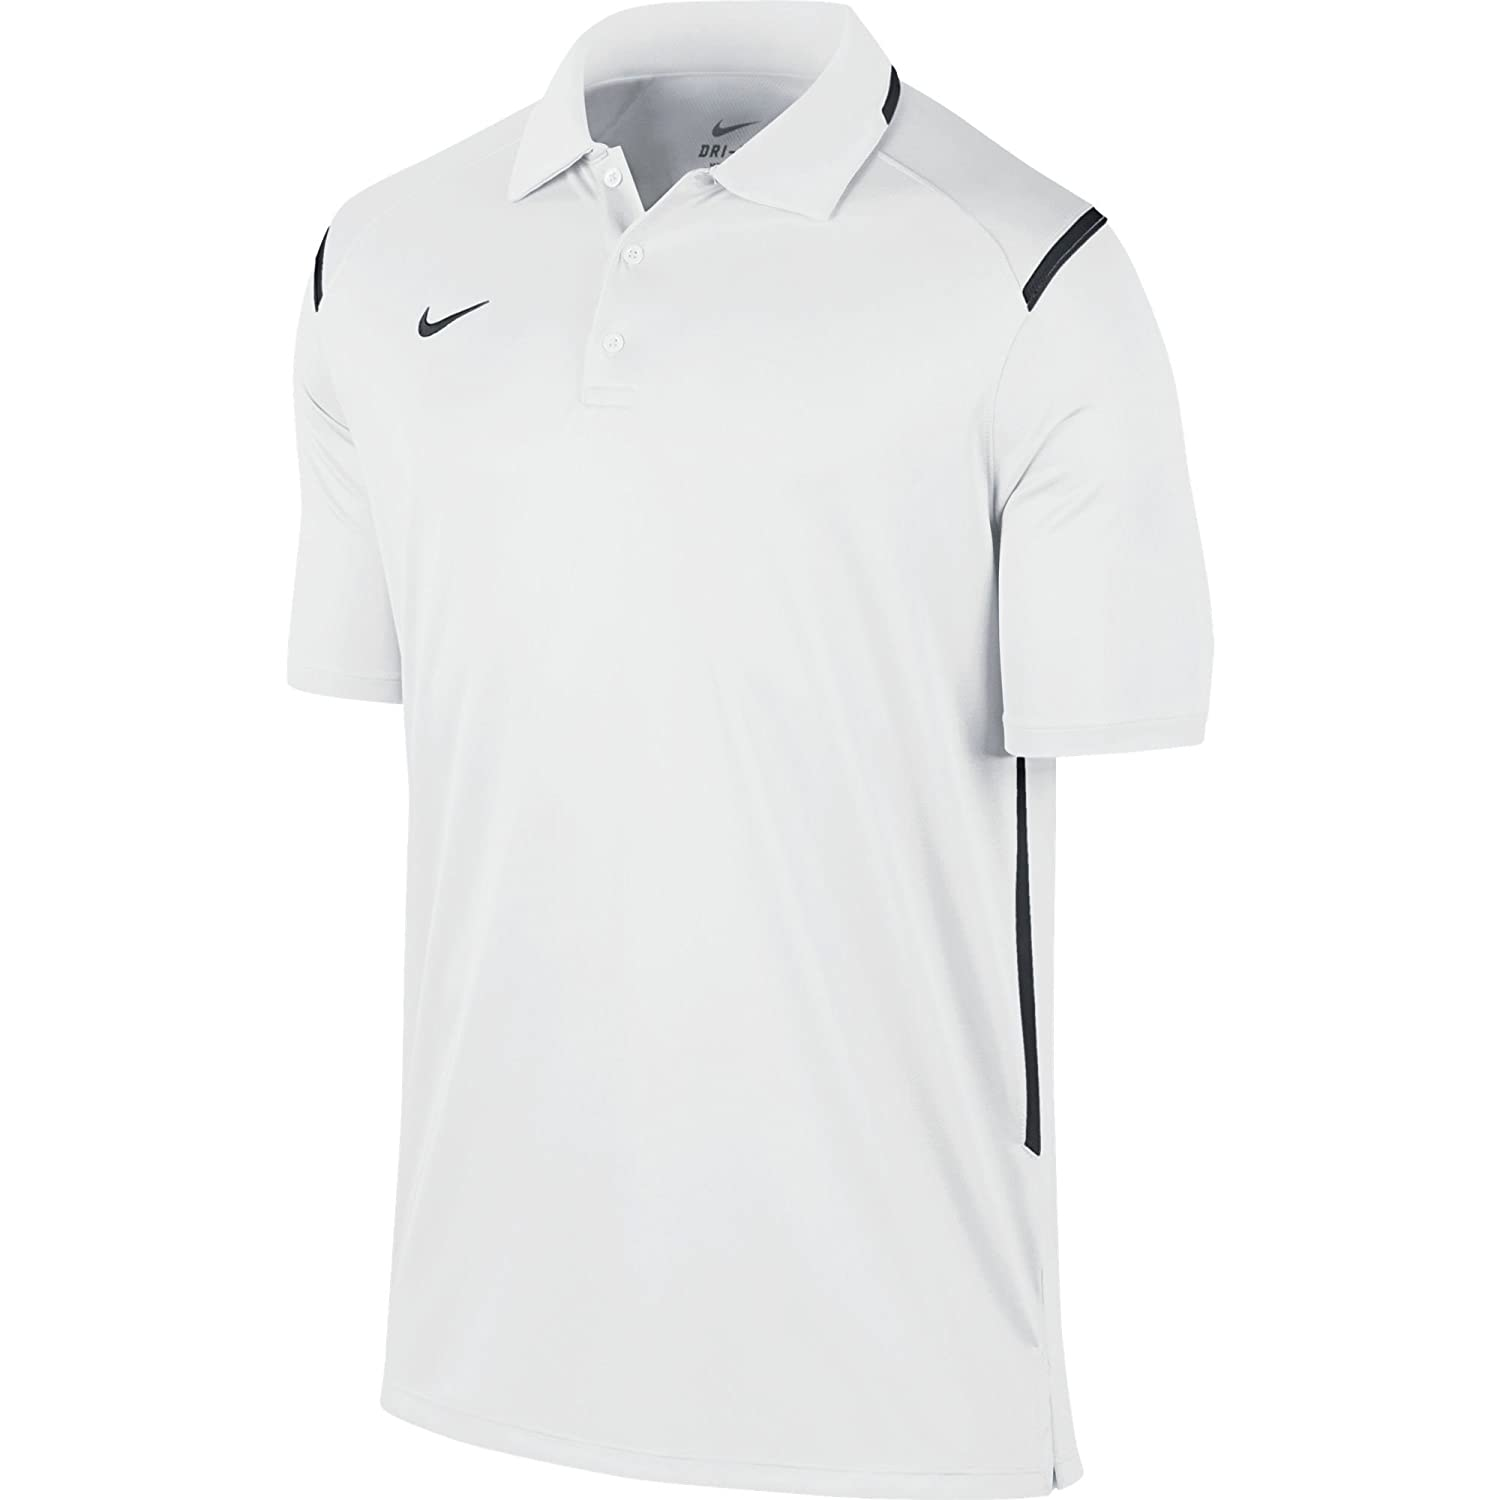 a8e180bc Top 10 wholesale Nike Football Polo Shirts - Chinabrands.com